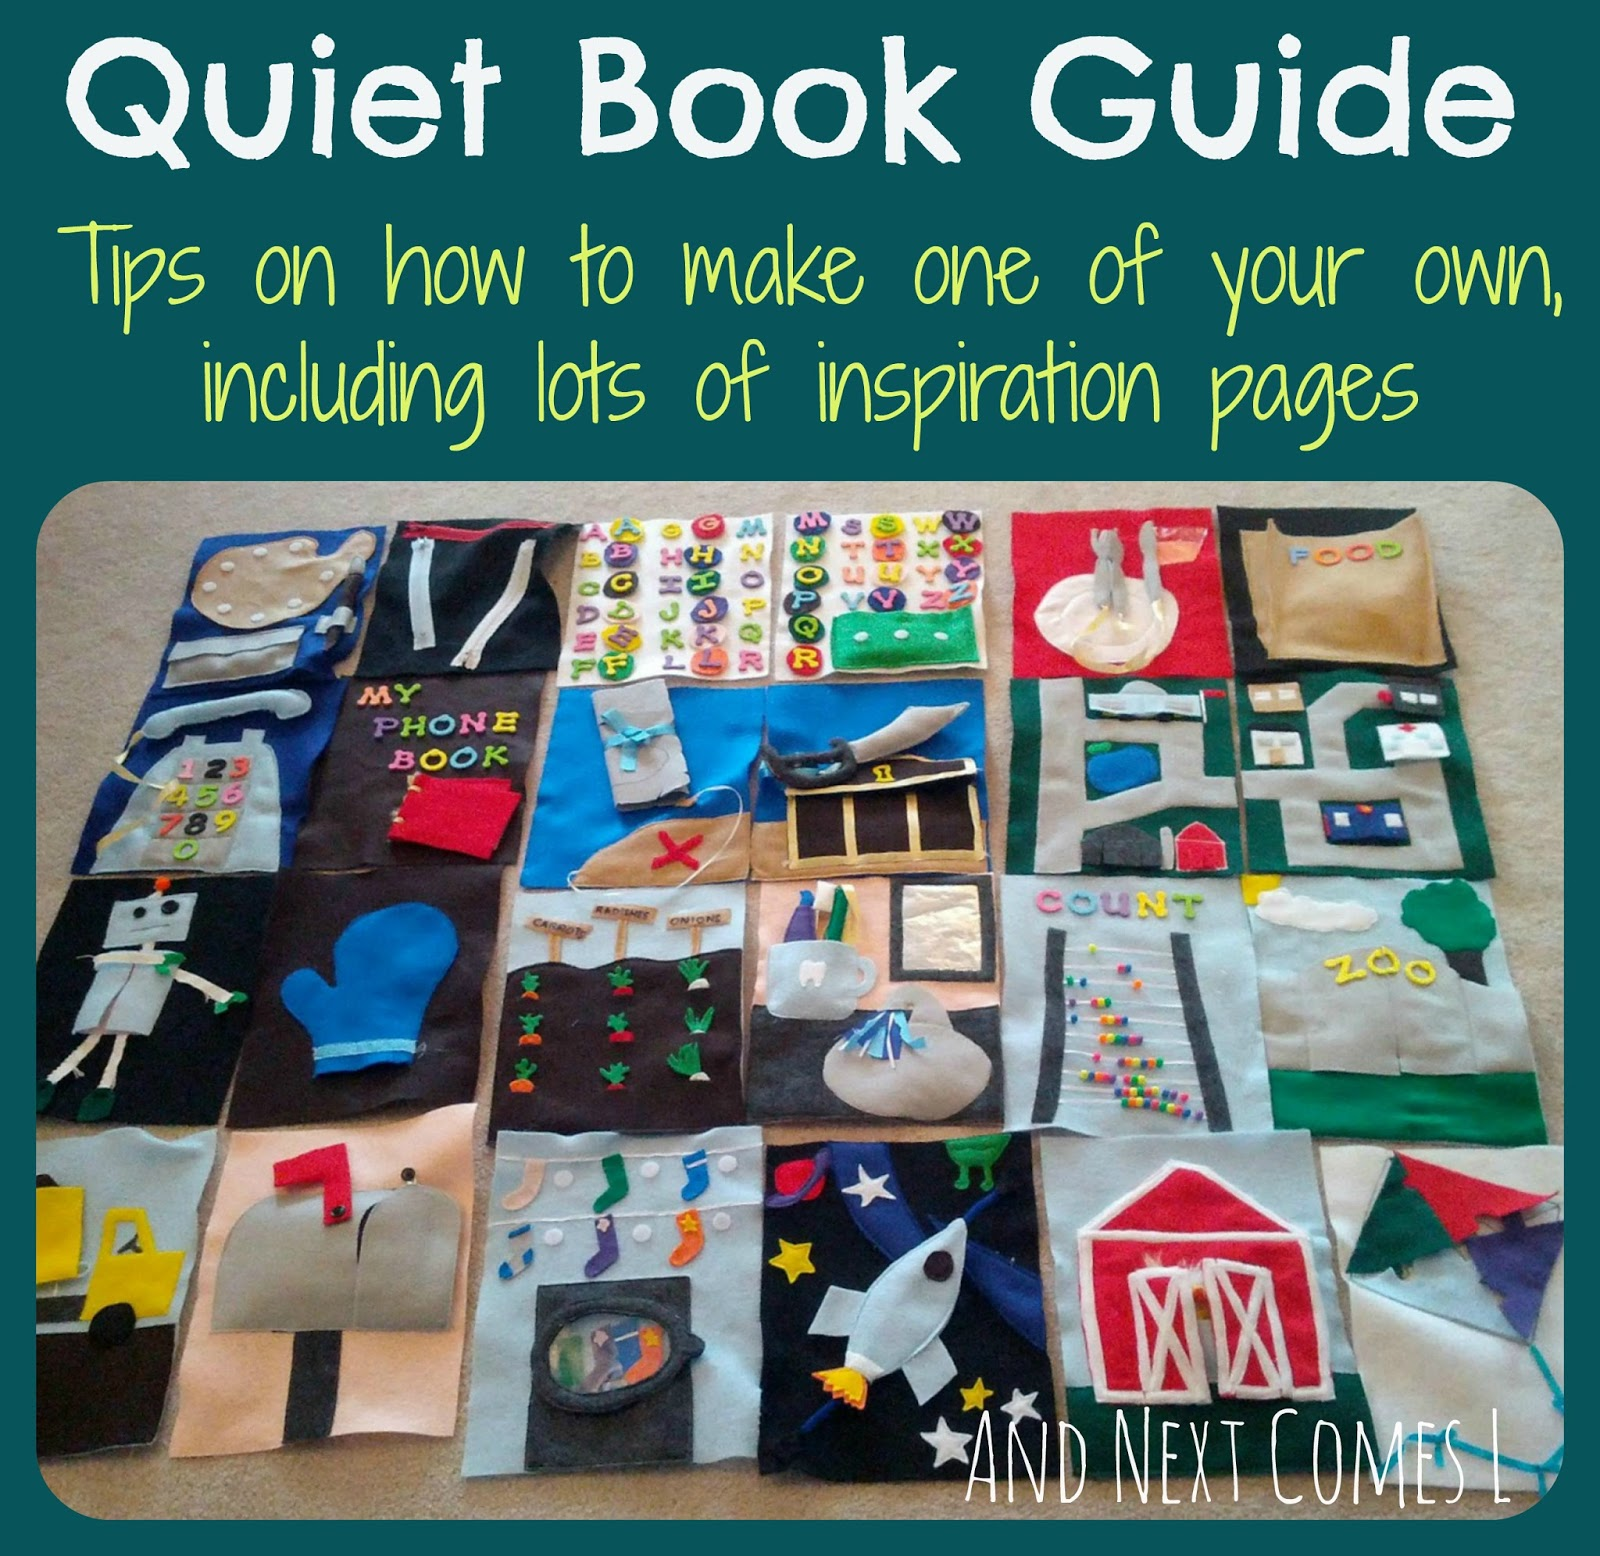 How To Make A Quiet Book: A Guide To Making One Of Your